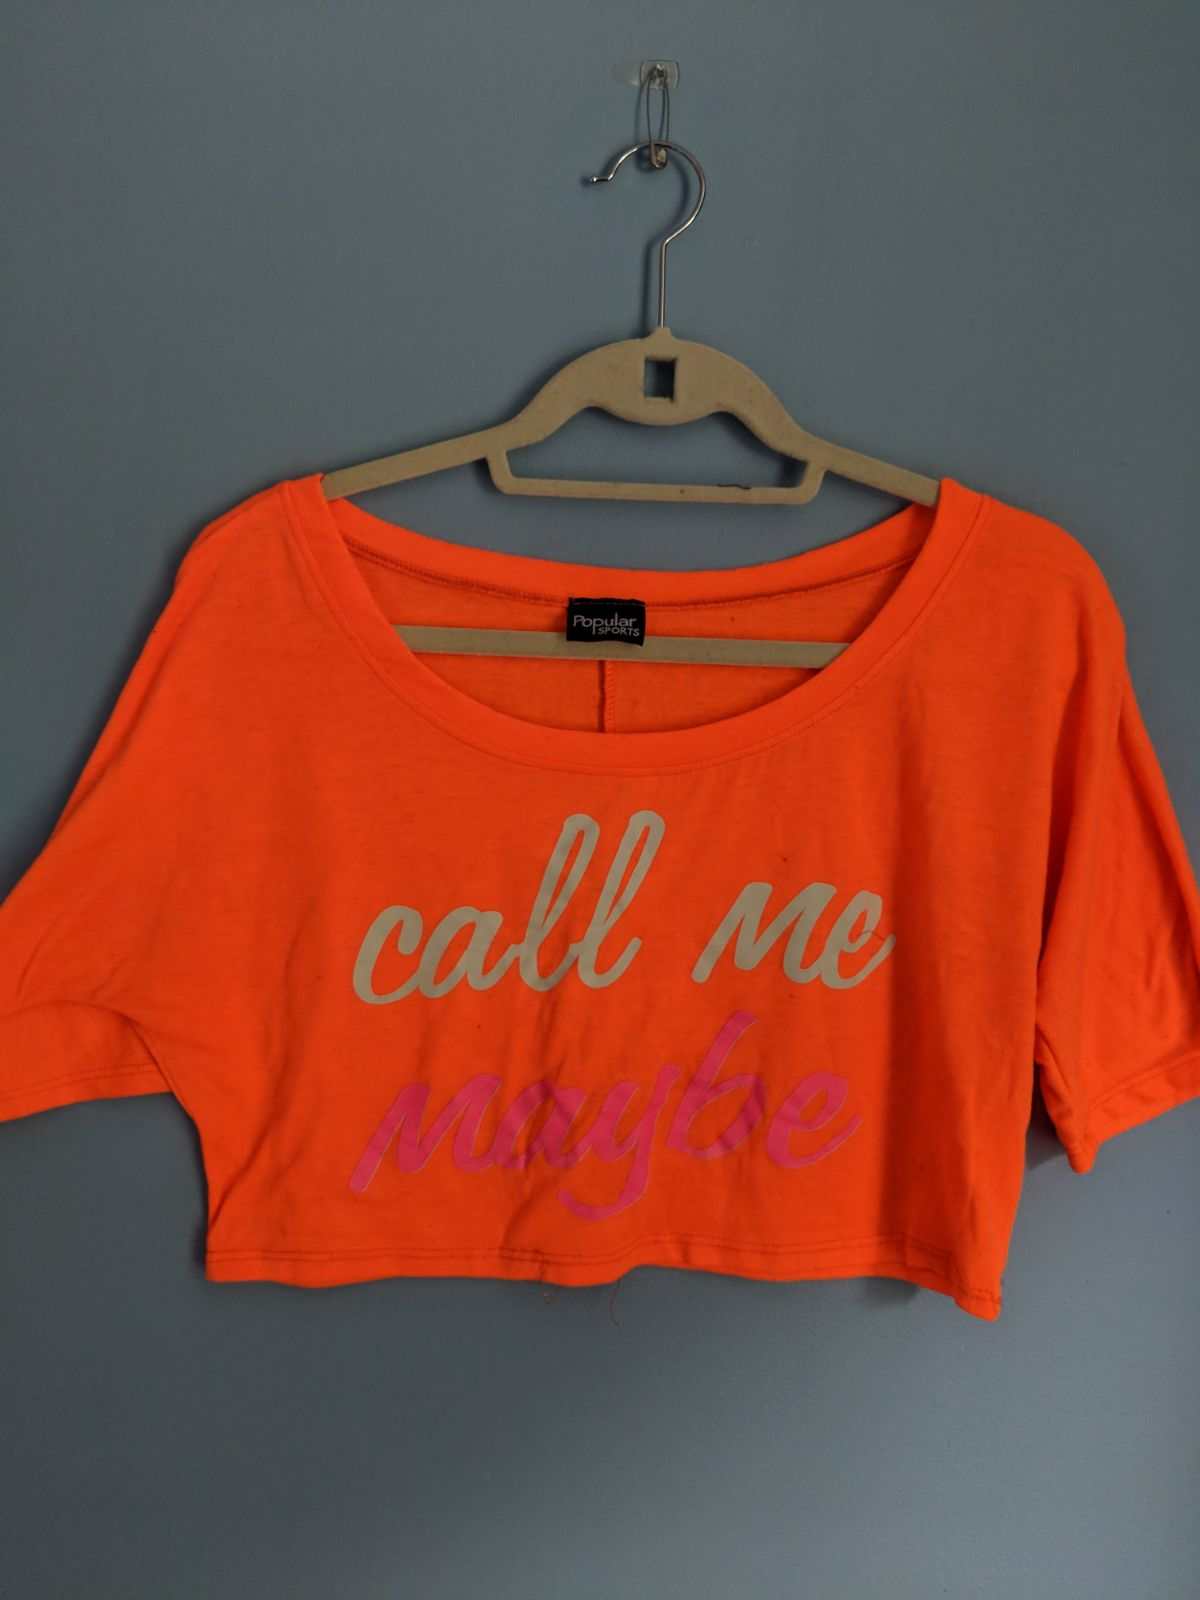 Call Me Maybe crop top